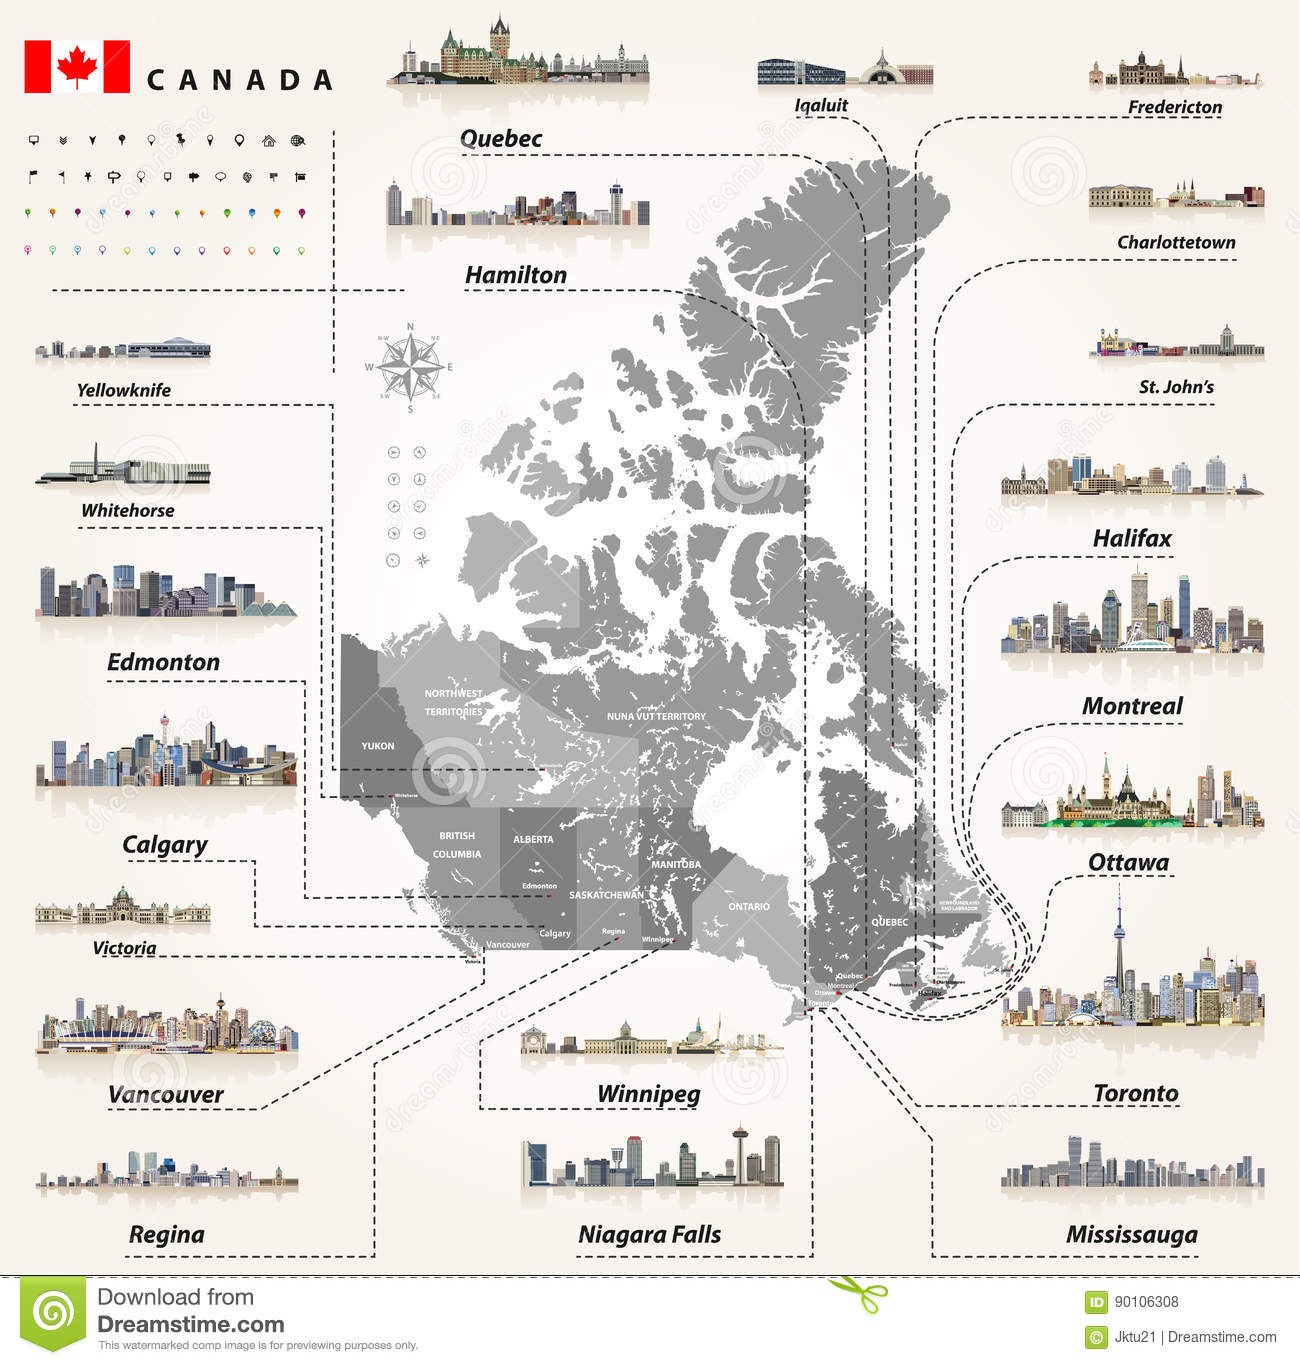 Provinces And Capitals Of Canada Map.Map Of Provinces And Territories Of Canada With Largest Cities And